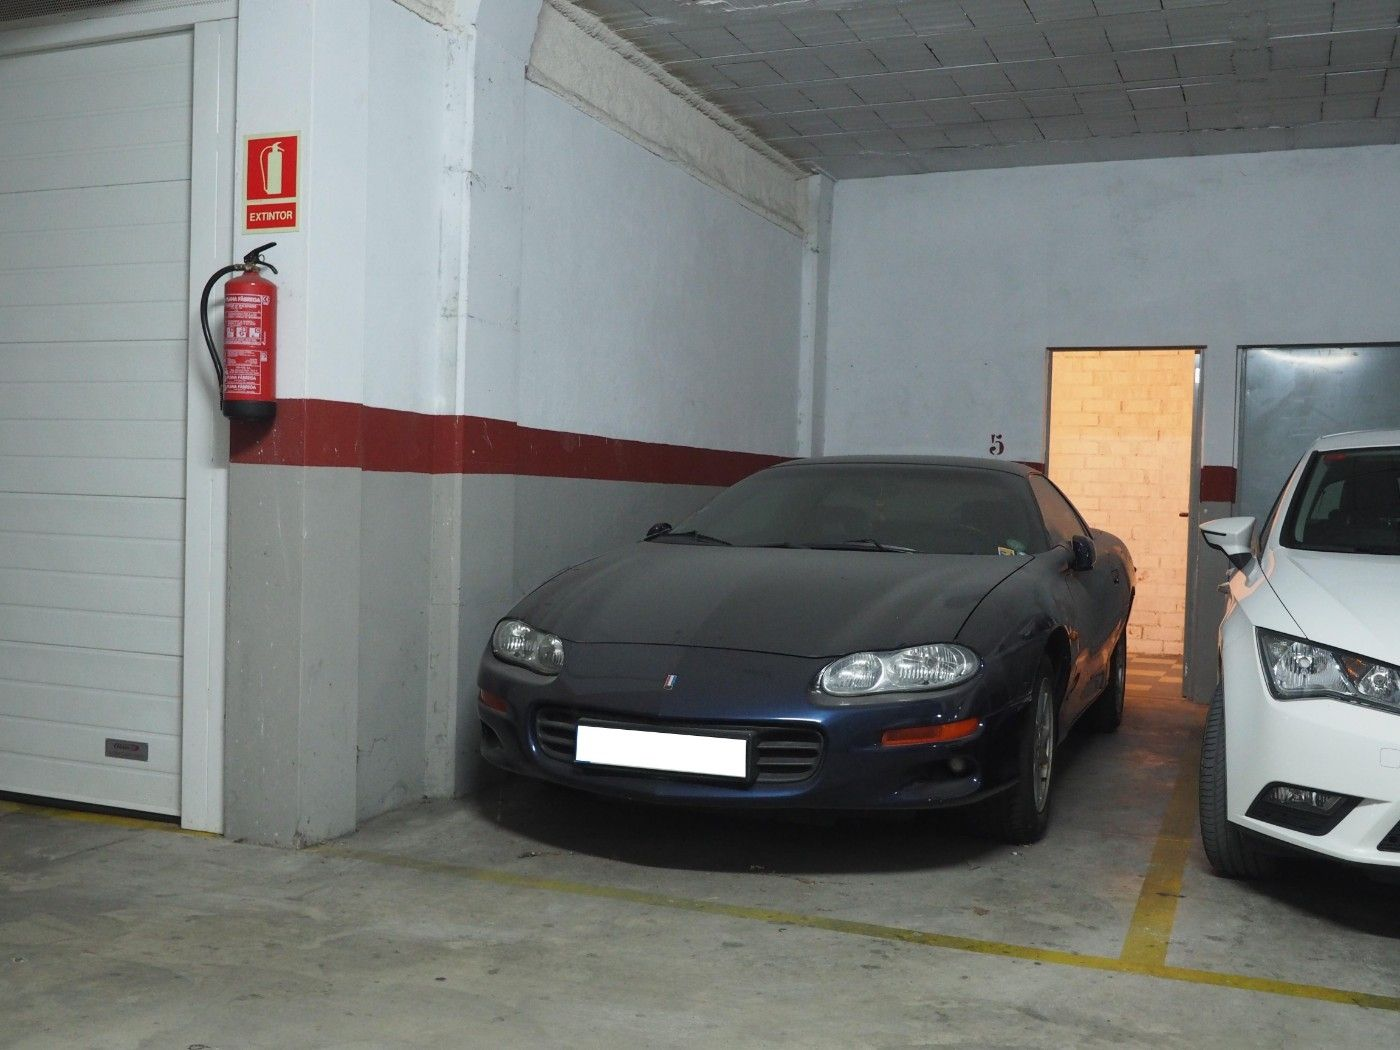 Parking voiture  Zona carrefour. Pàrquing i 2 trasters